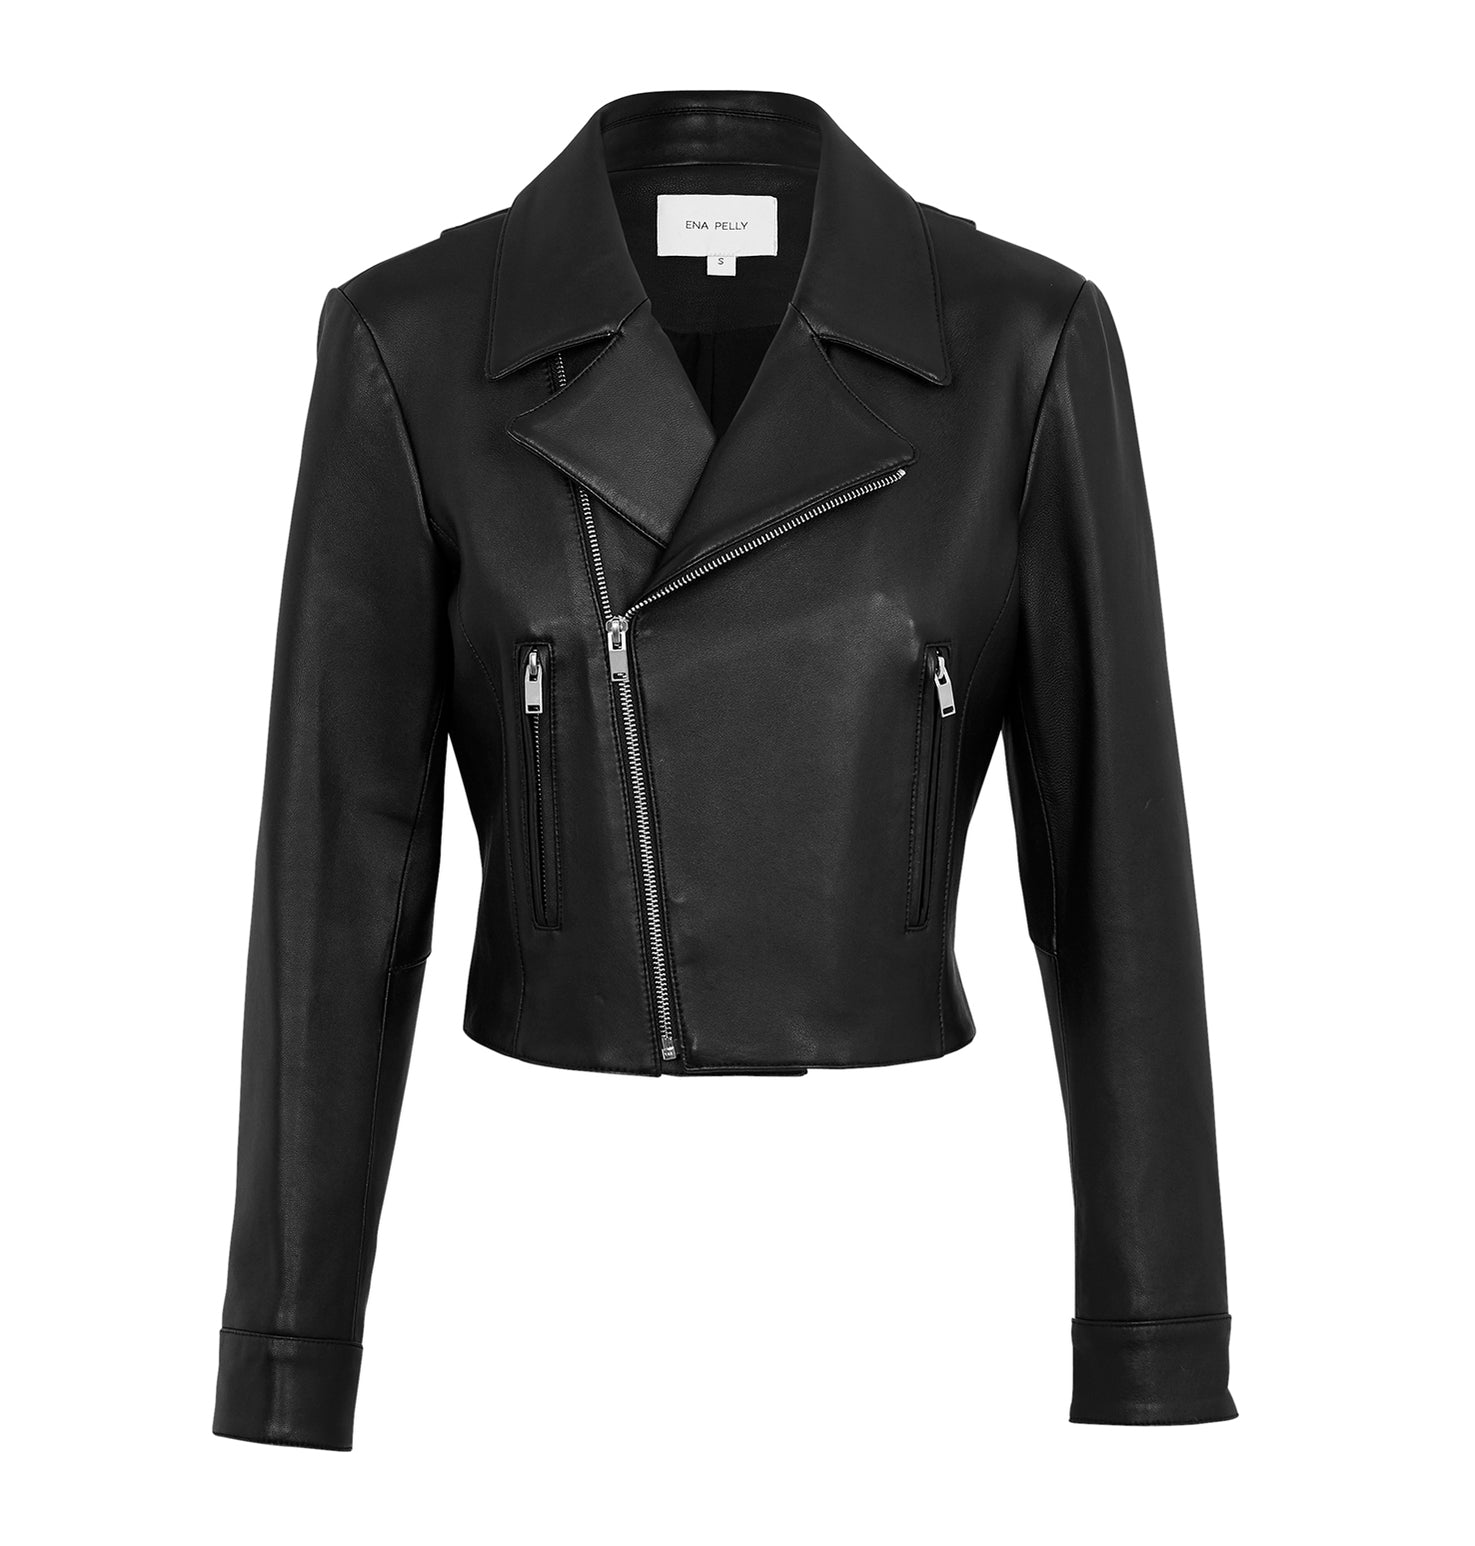 Cropped Jacket - Black/Silver